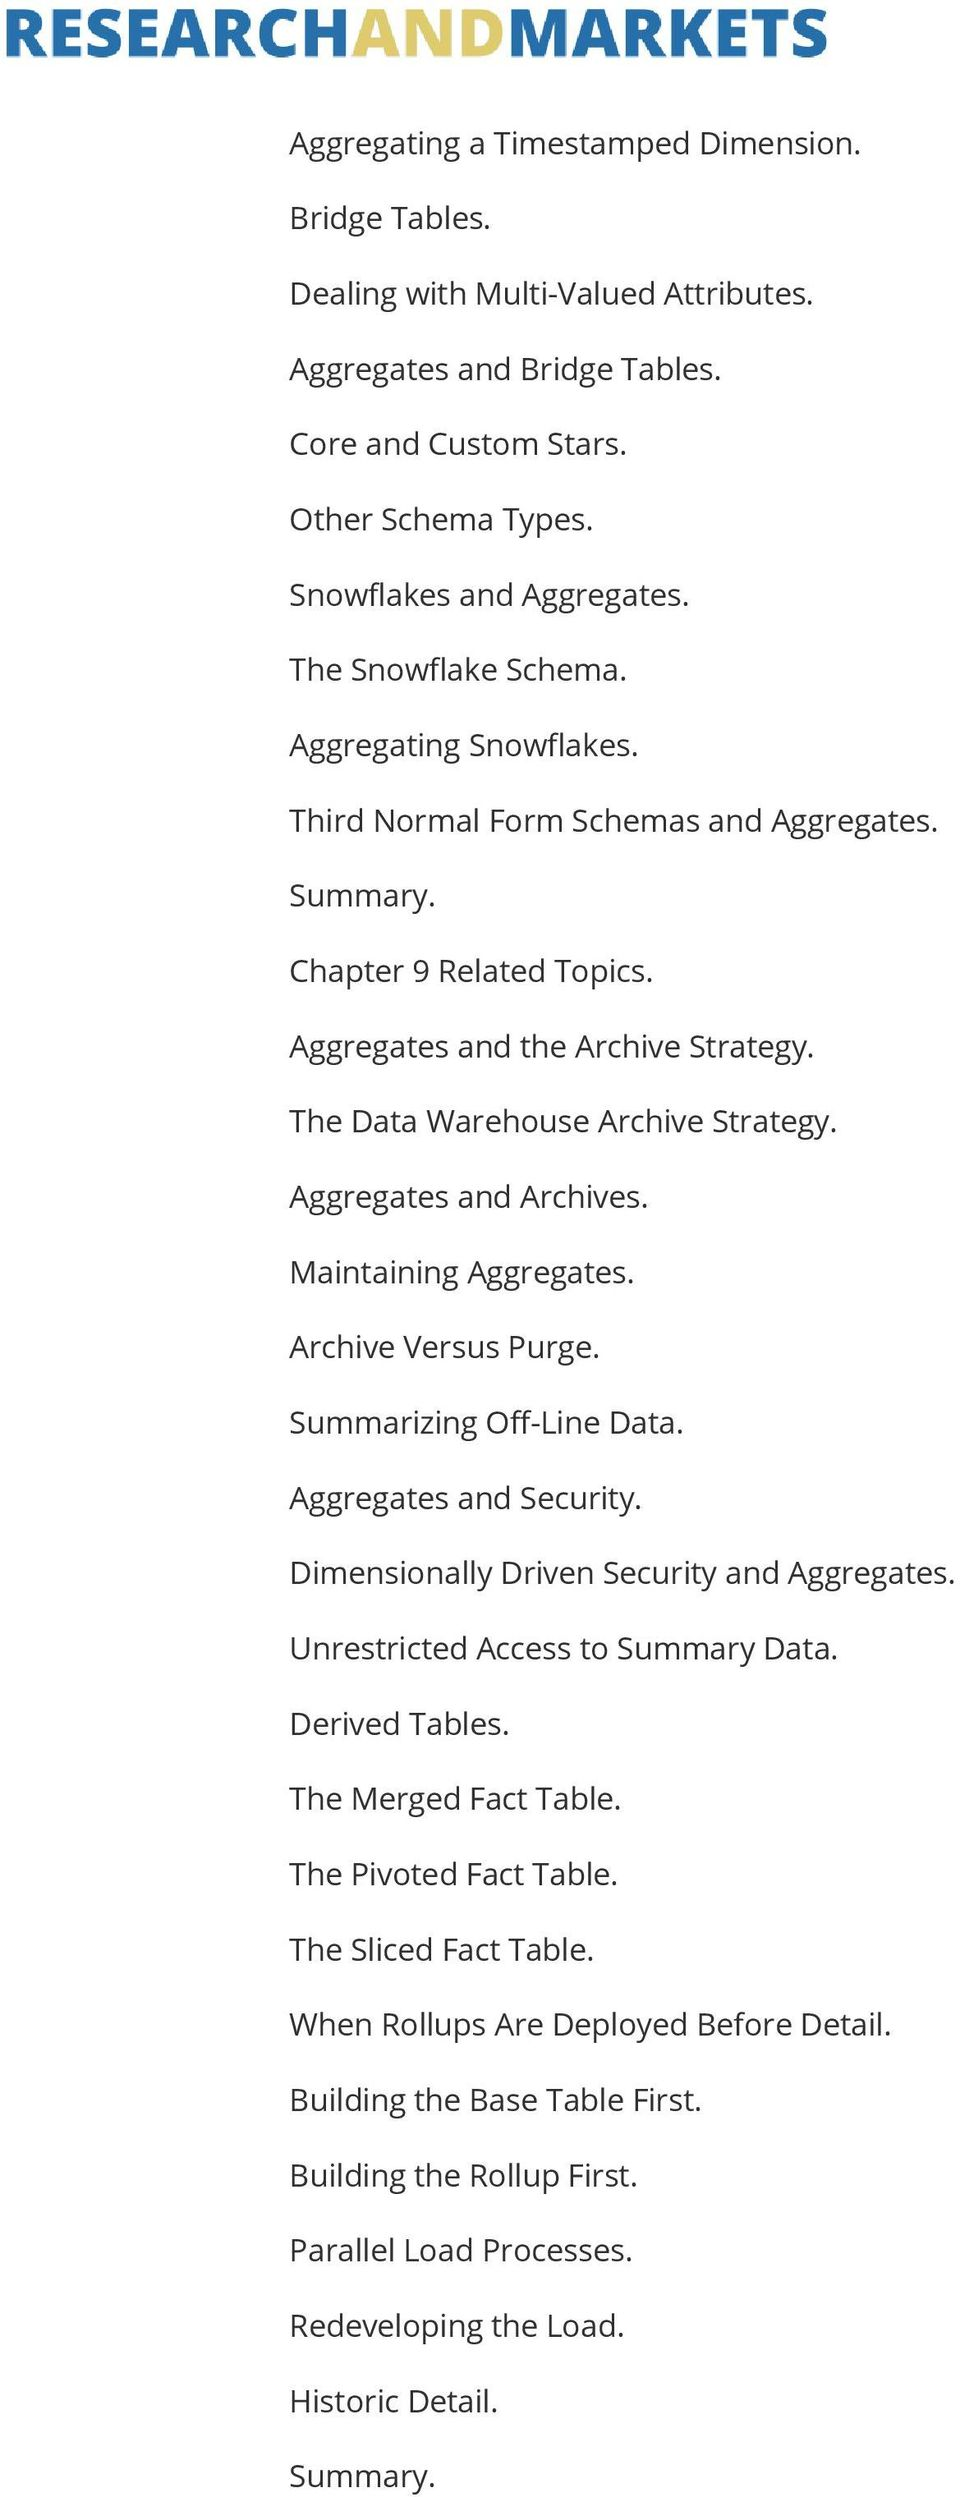 Aggregates and Archives. Maintaining Aggregates. Archive Versus Purge. Summarizing Off-Line Data. Aggregates and Security. Dimensionally Driven Security and Aggregates.